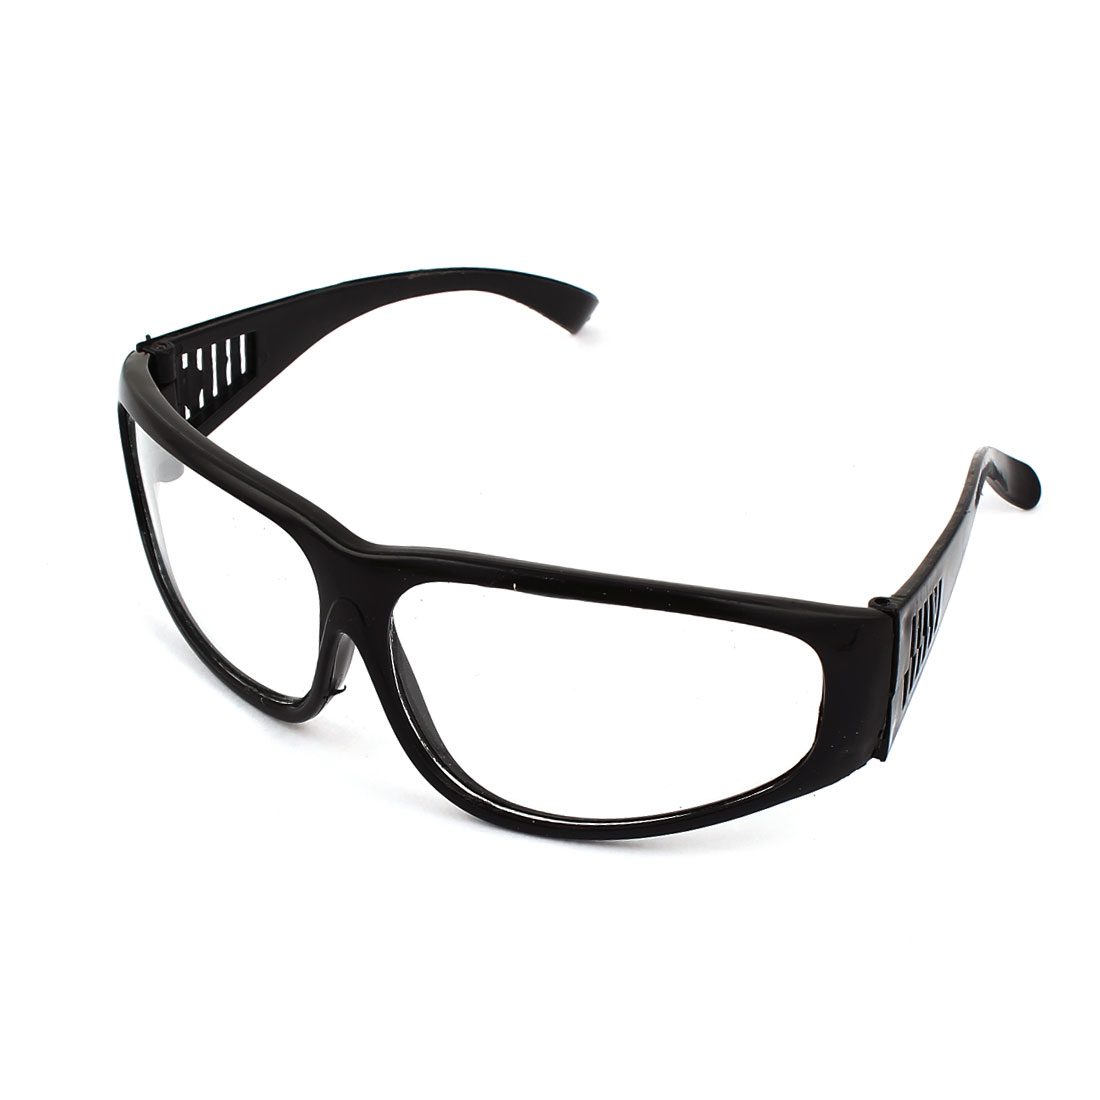 Black Plastic Full Frame Hollow Out Arms Clear Lens Welding Glasses Goggles